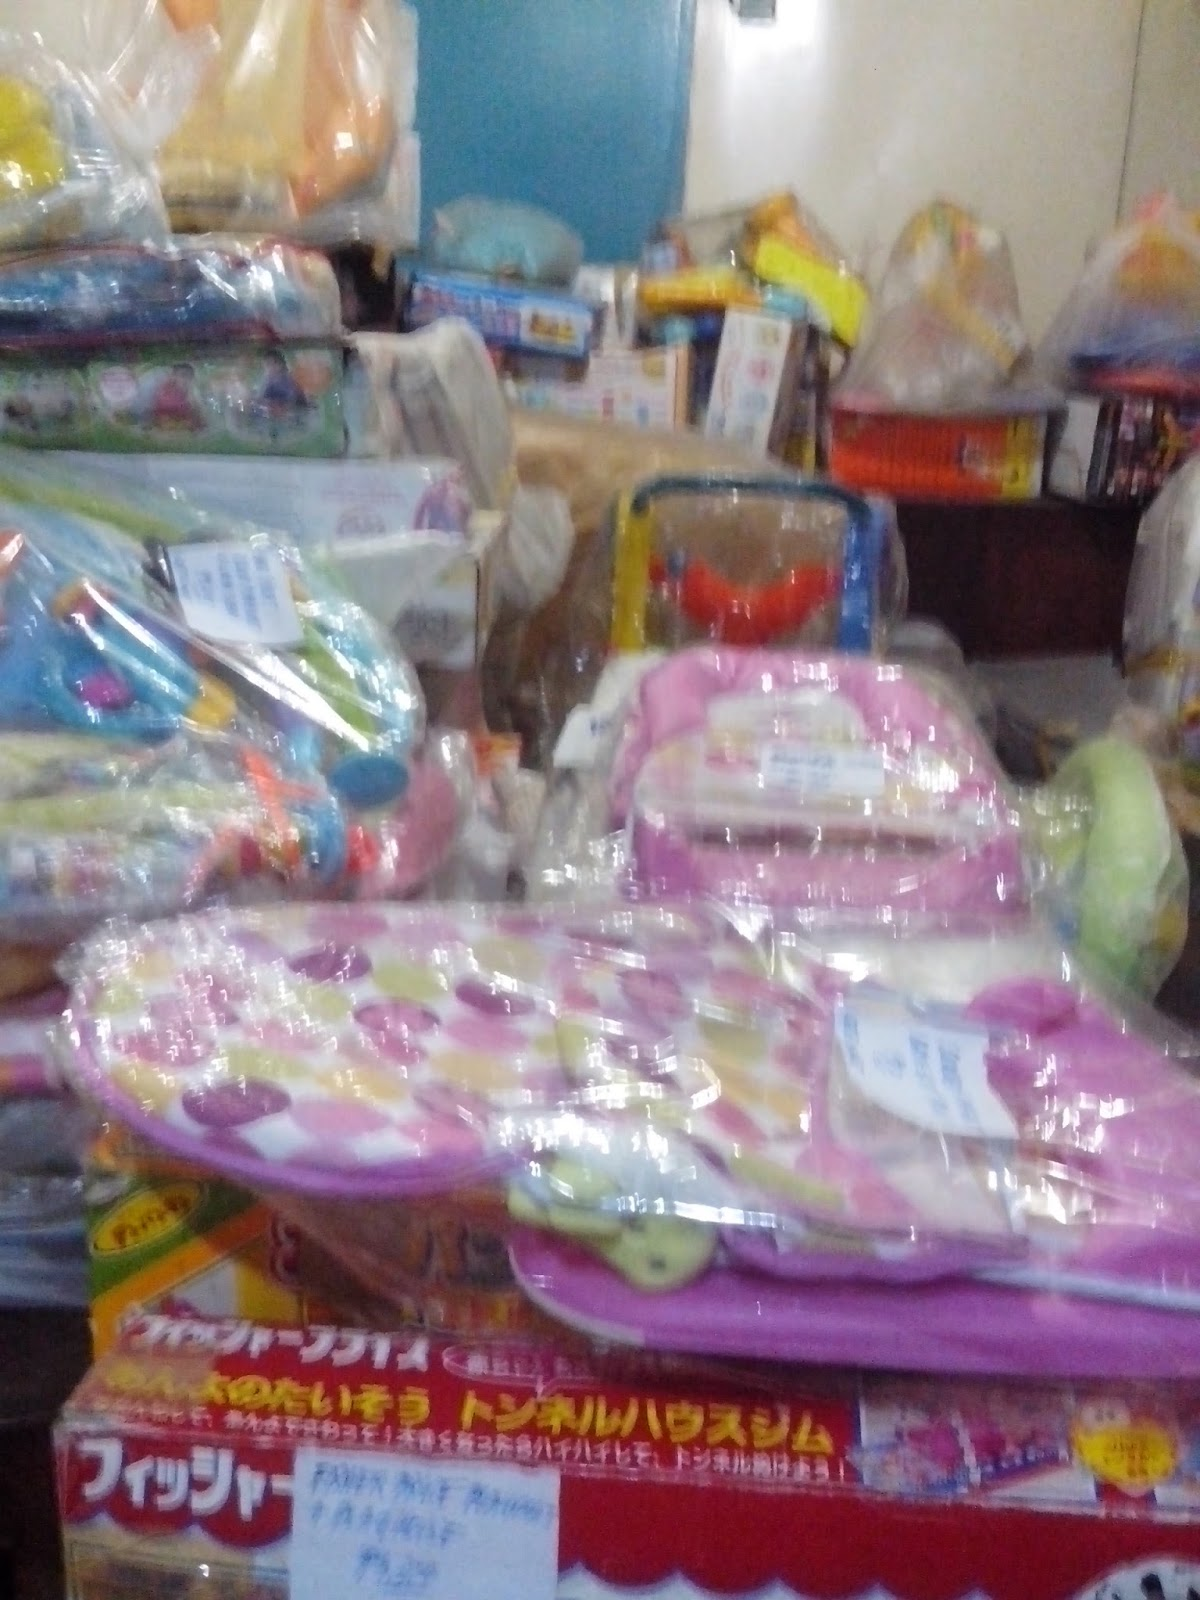 Wooden crib for sale quezon city - Mostly Baby Stuff Crib Stroller Toys Wooden Baby Chair And Many Other Related Items